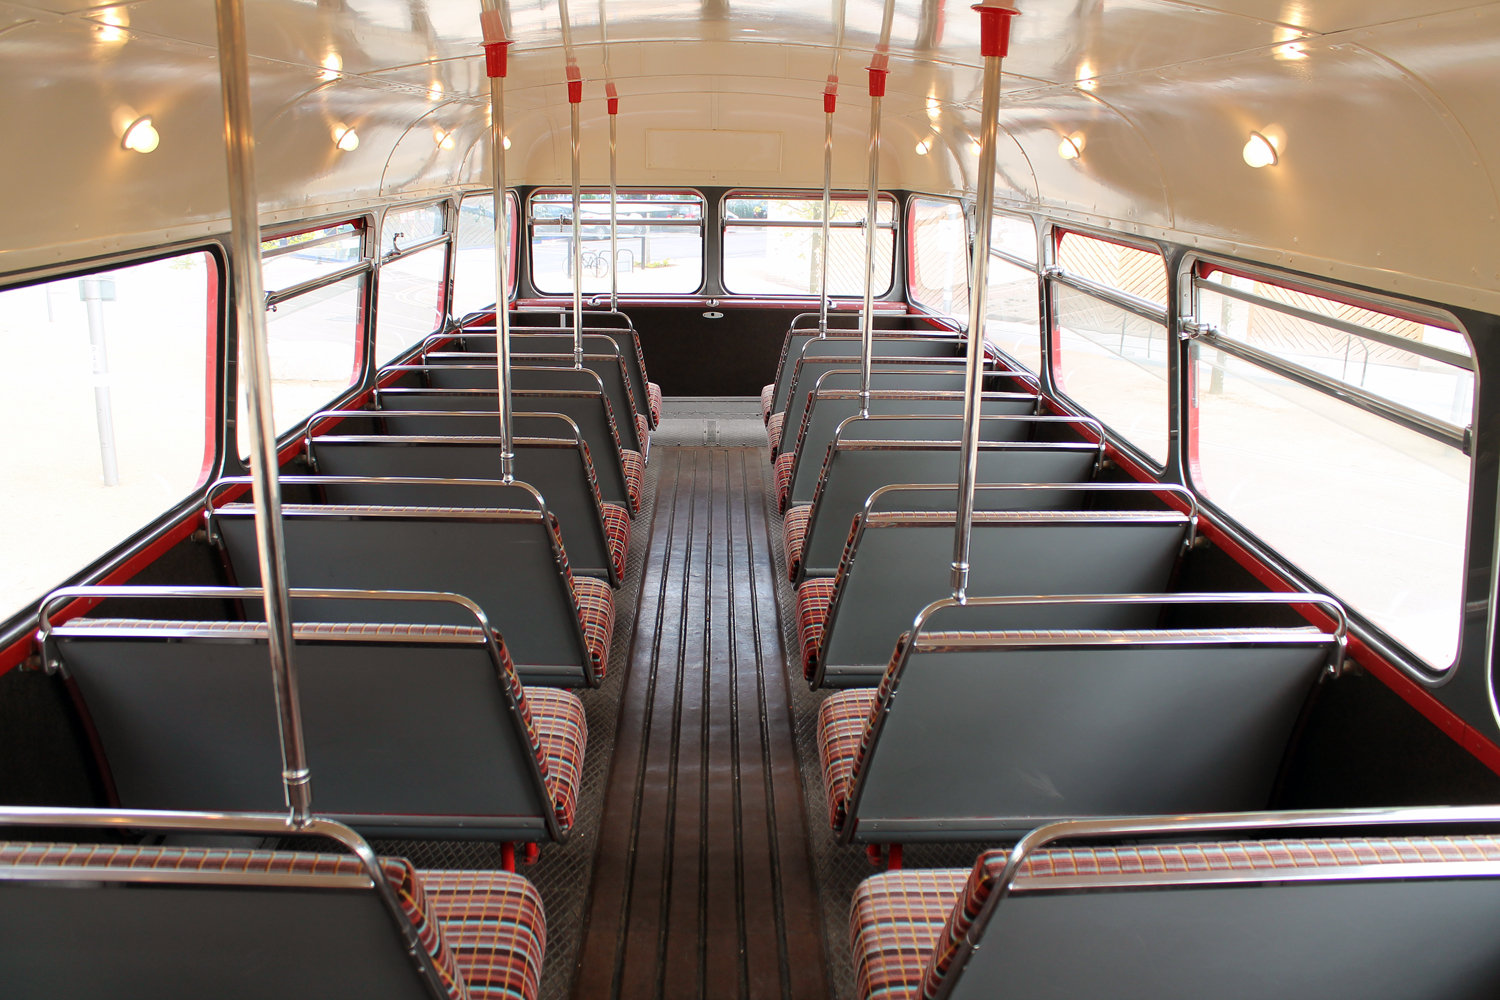 1964 AEC Routemaster Bus - AEC Engined RM For Sale (picture 4 of 5)